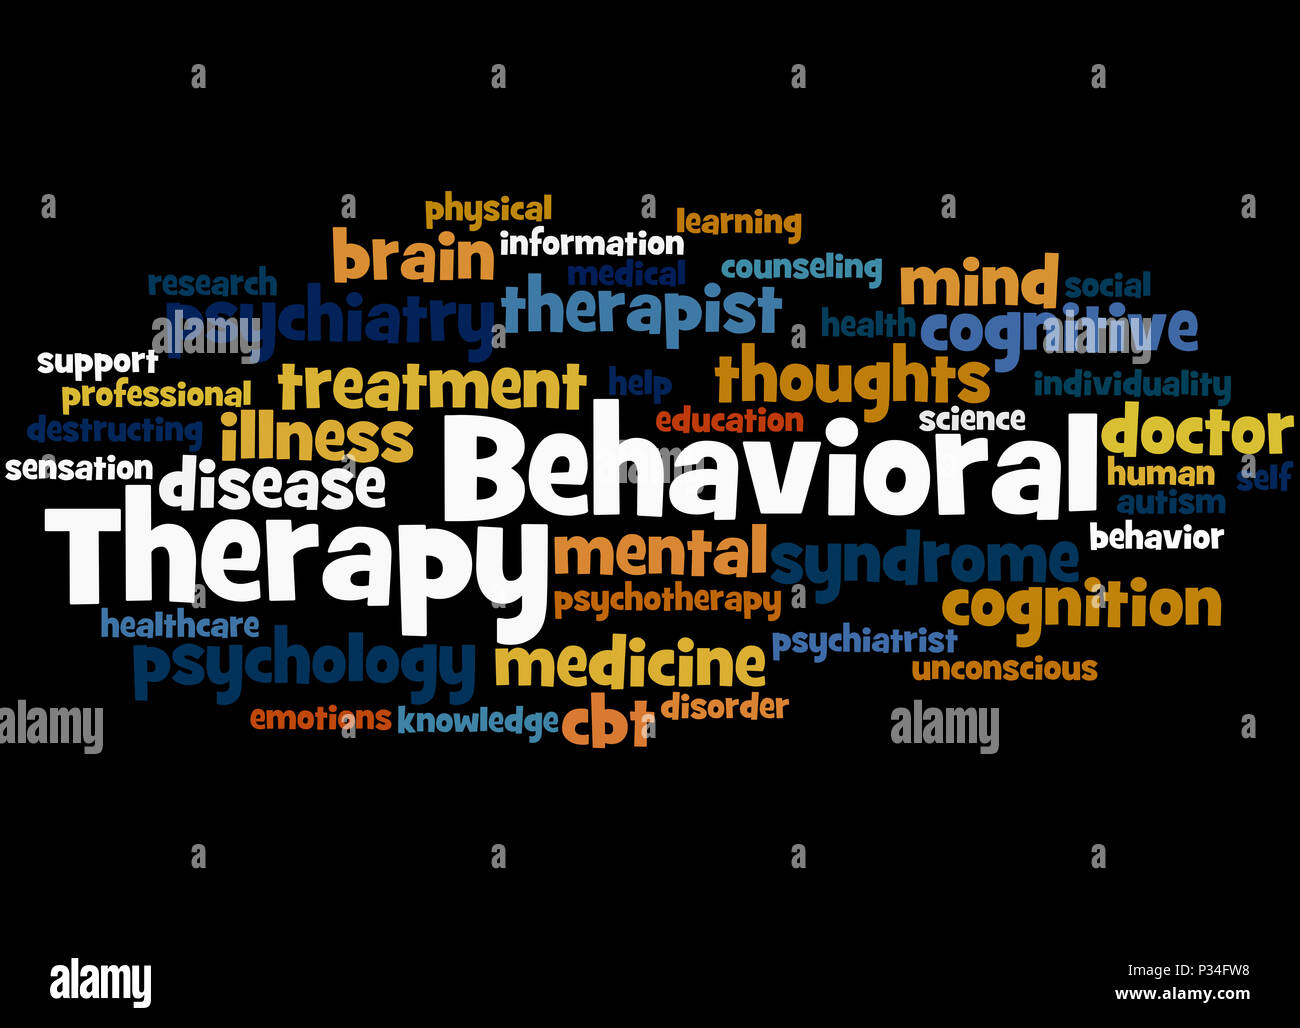 Behavioral Therapy, word cloud concept on black background. - Stock Image